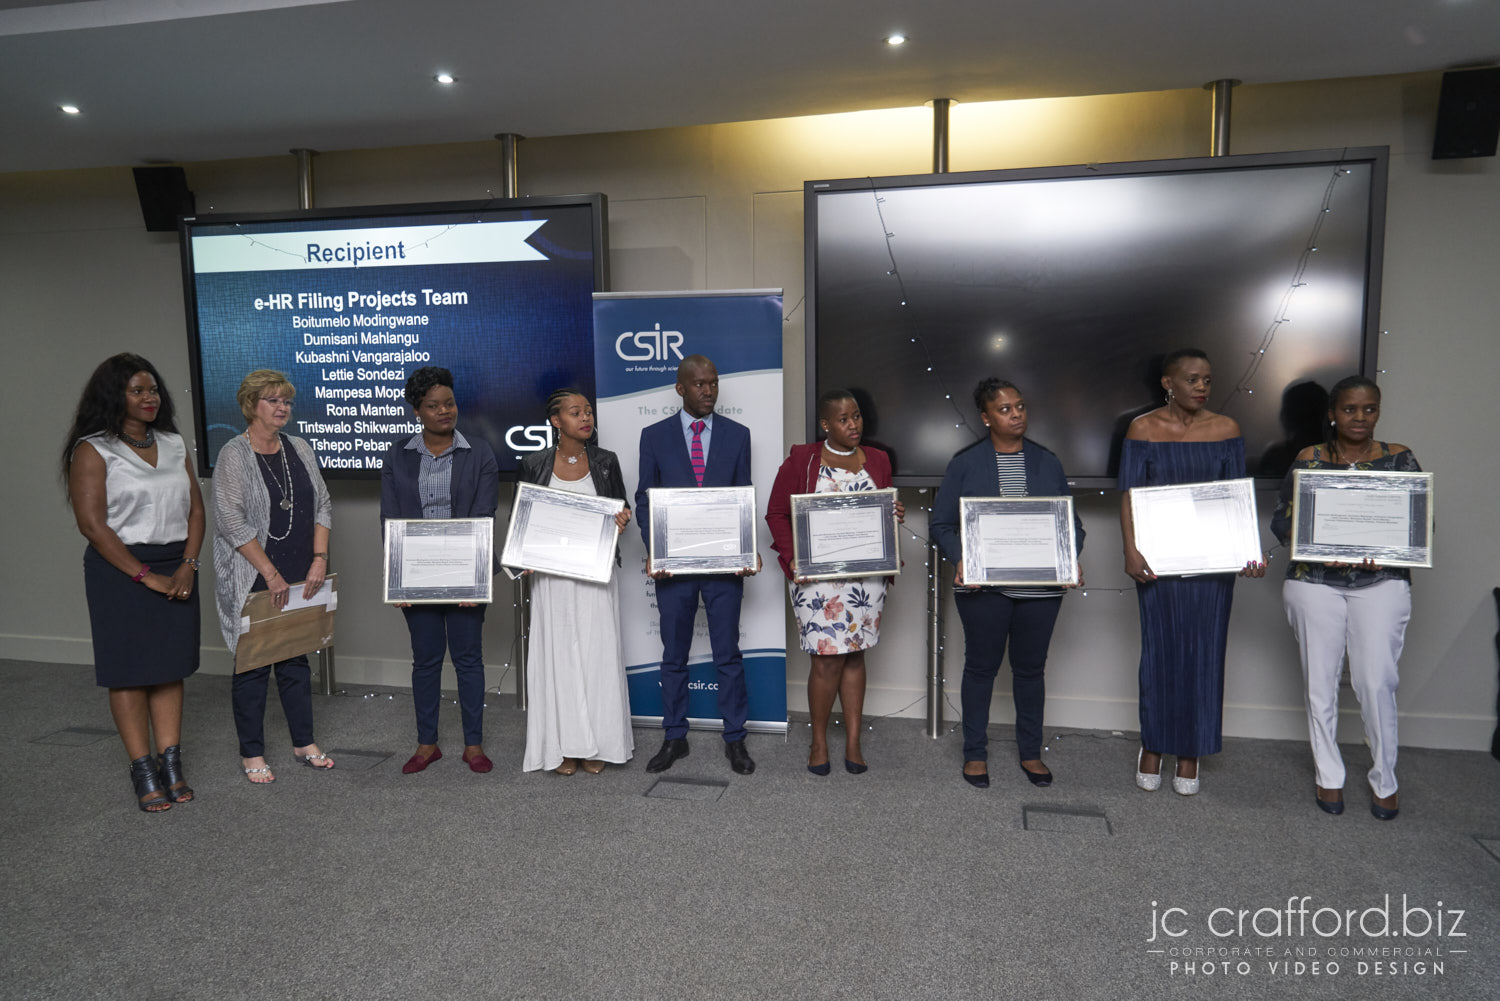 JC Crafford.biz corporate function and awards ceremony photography CSIR